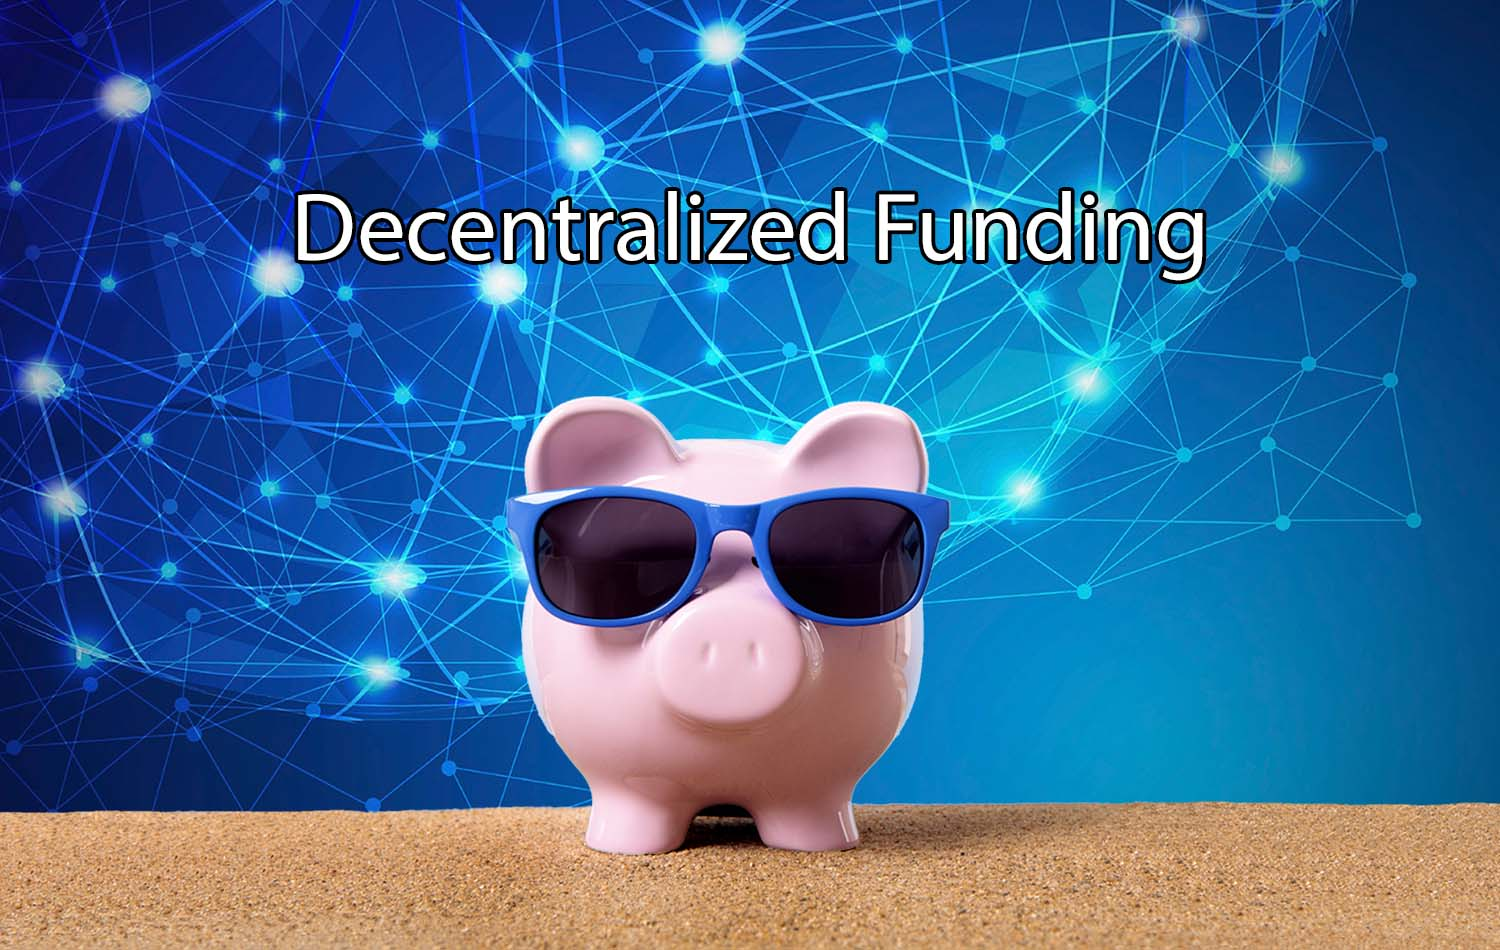 Decentralized funding network behind little piggy with sunglasses